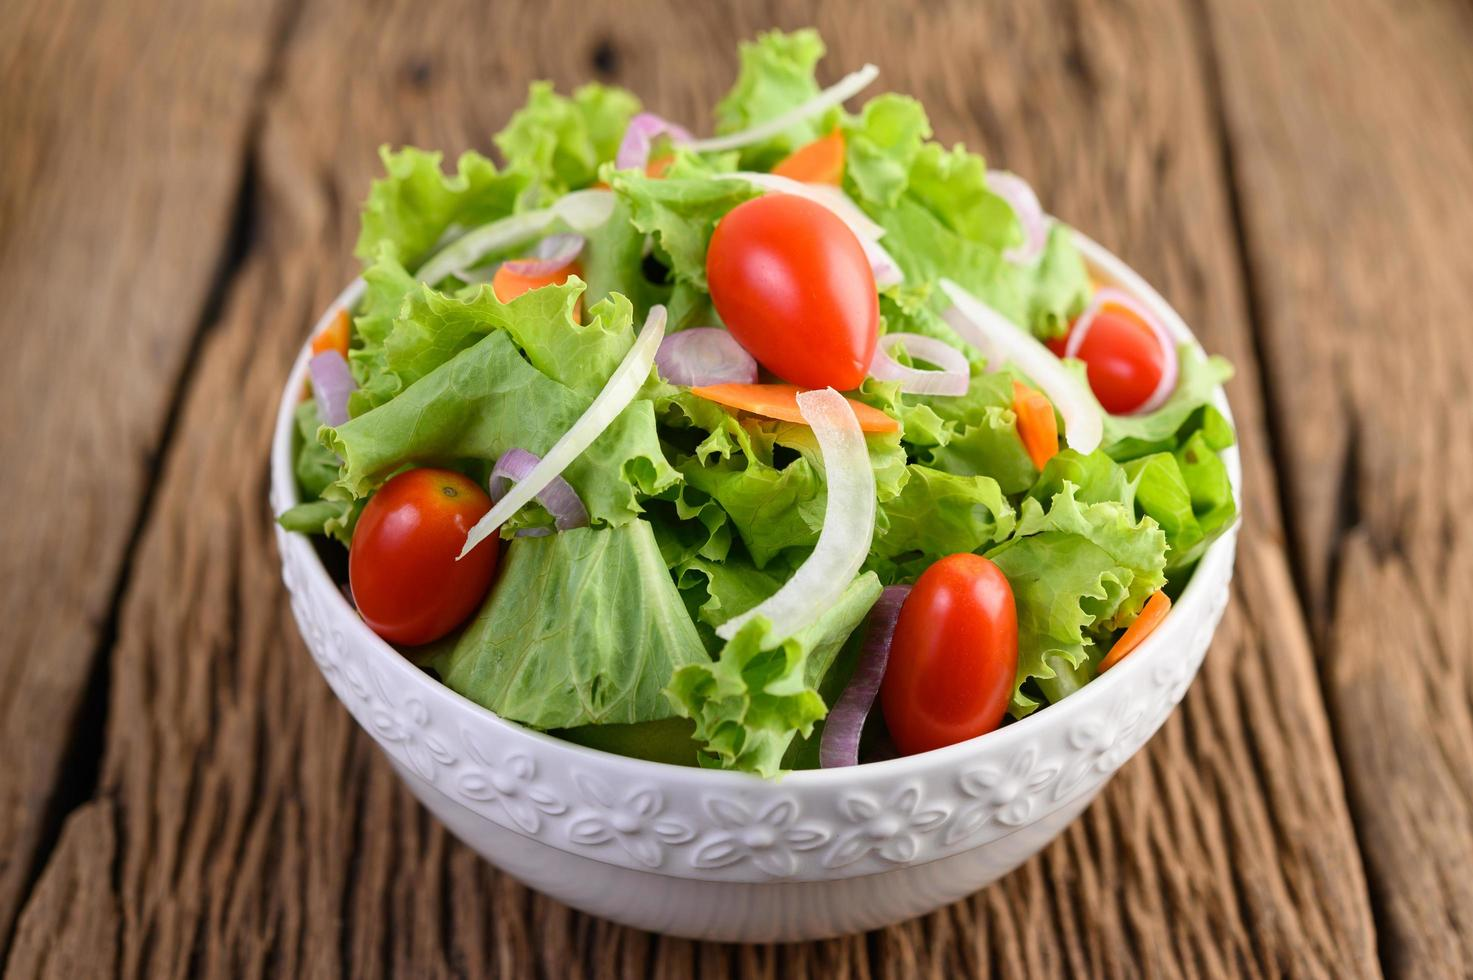 Salad on a wooden table photo